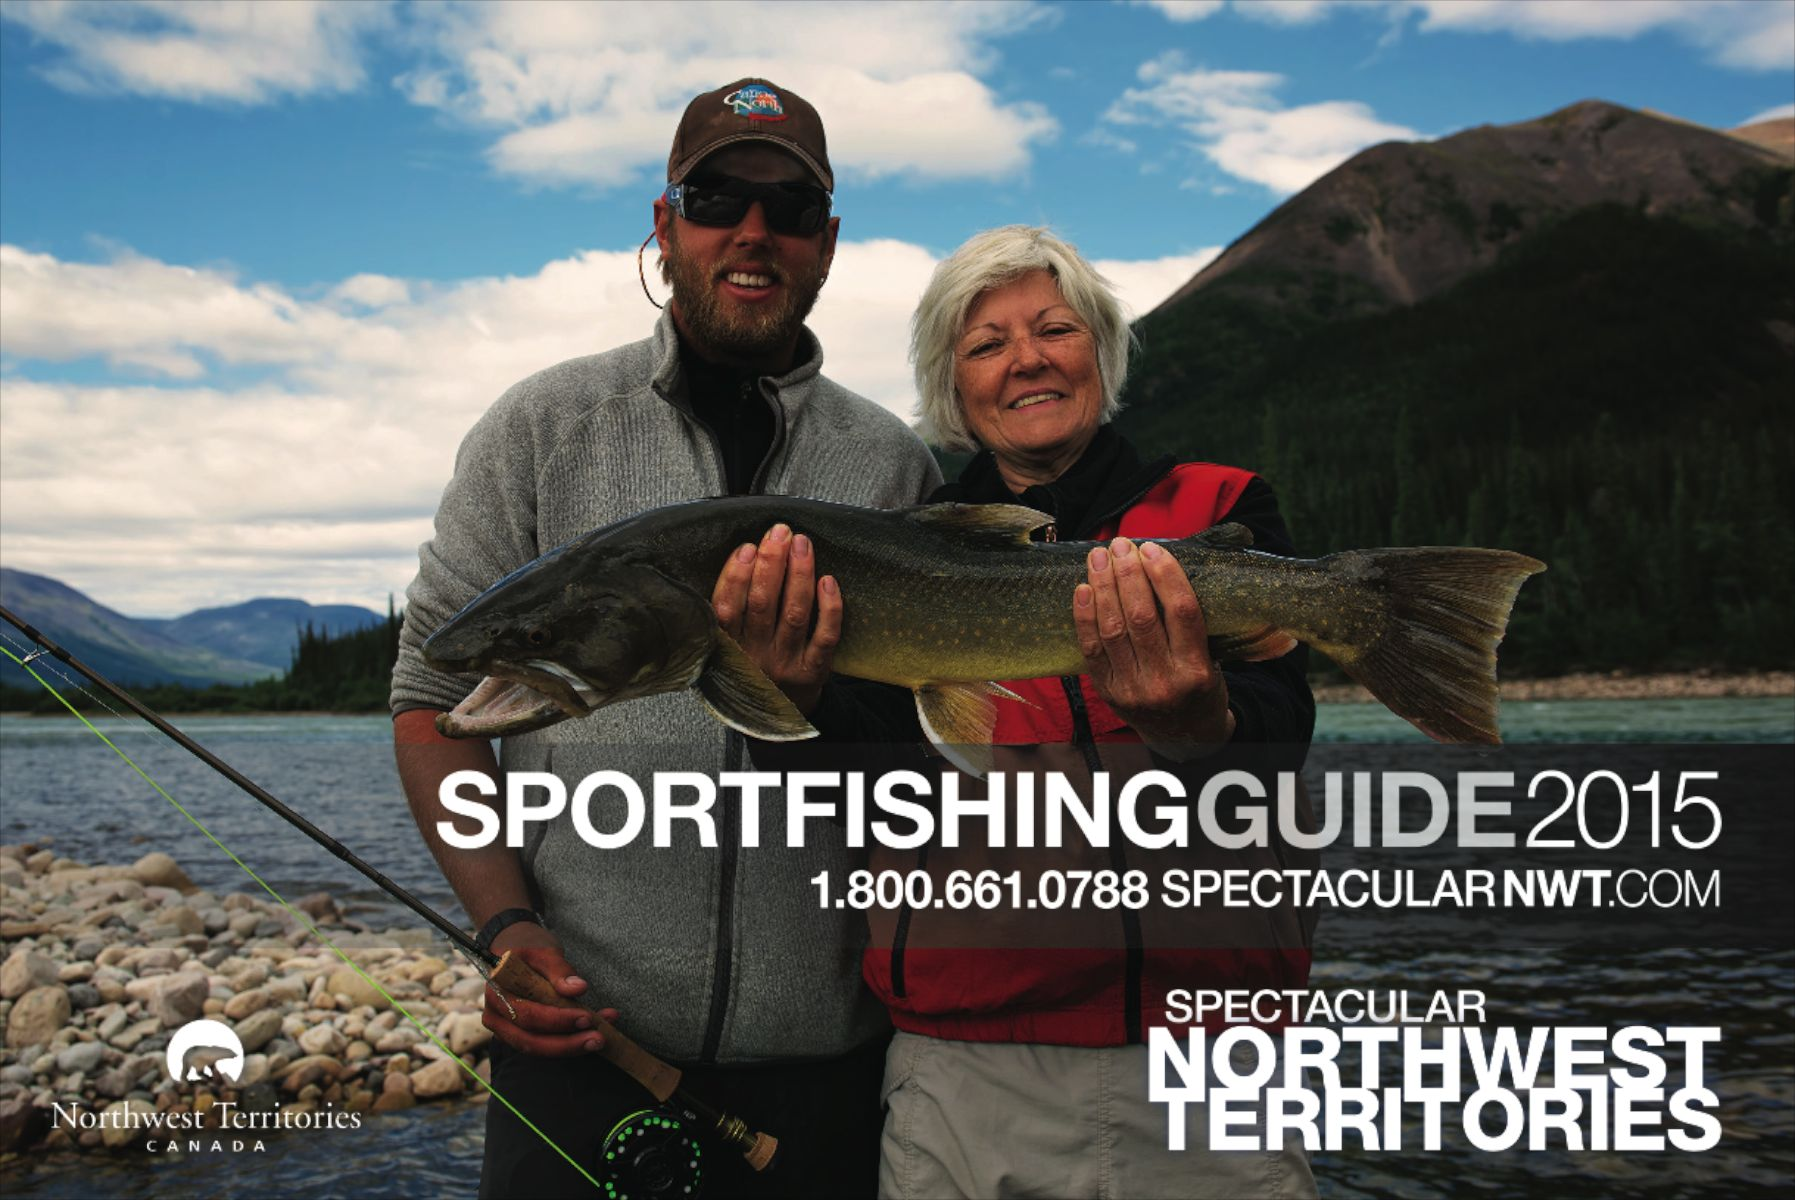 JasonvanBruggenNWTT_5554_Fishing Guide Cover_2015